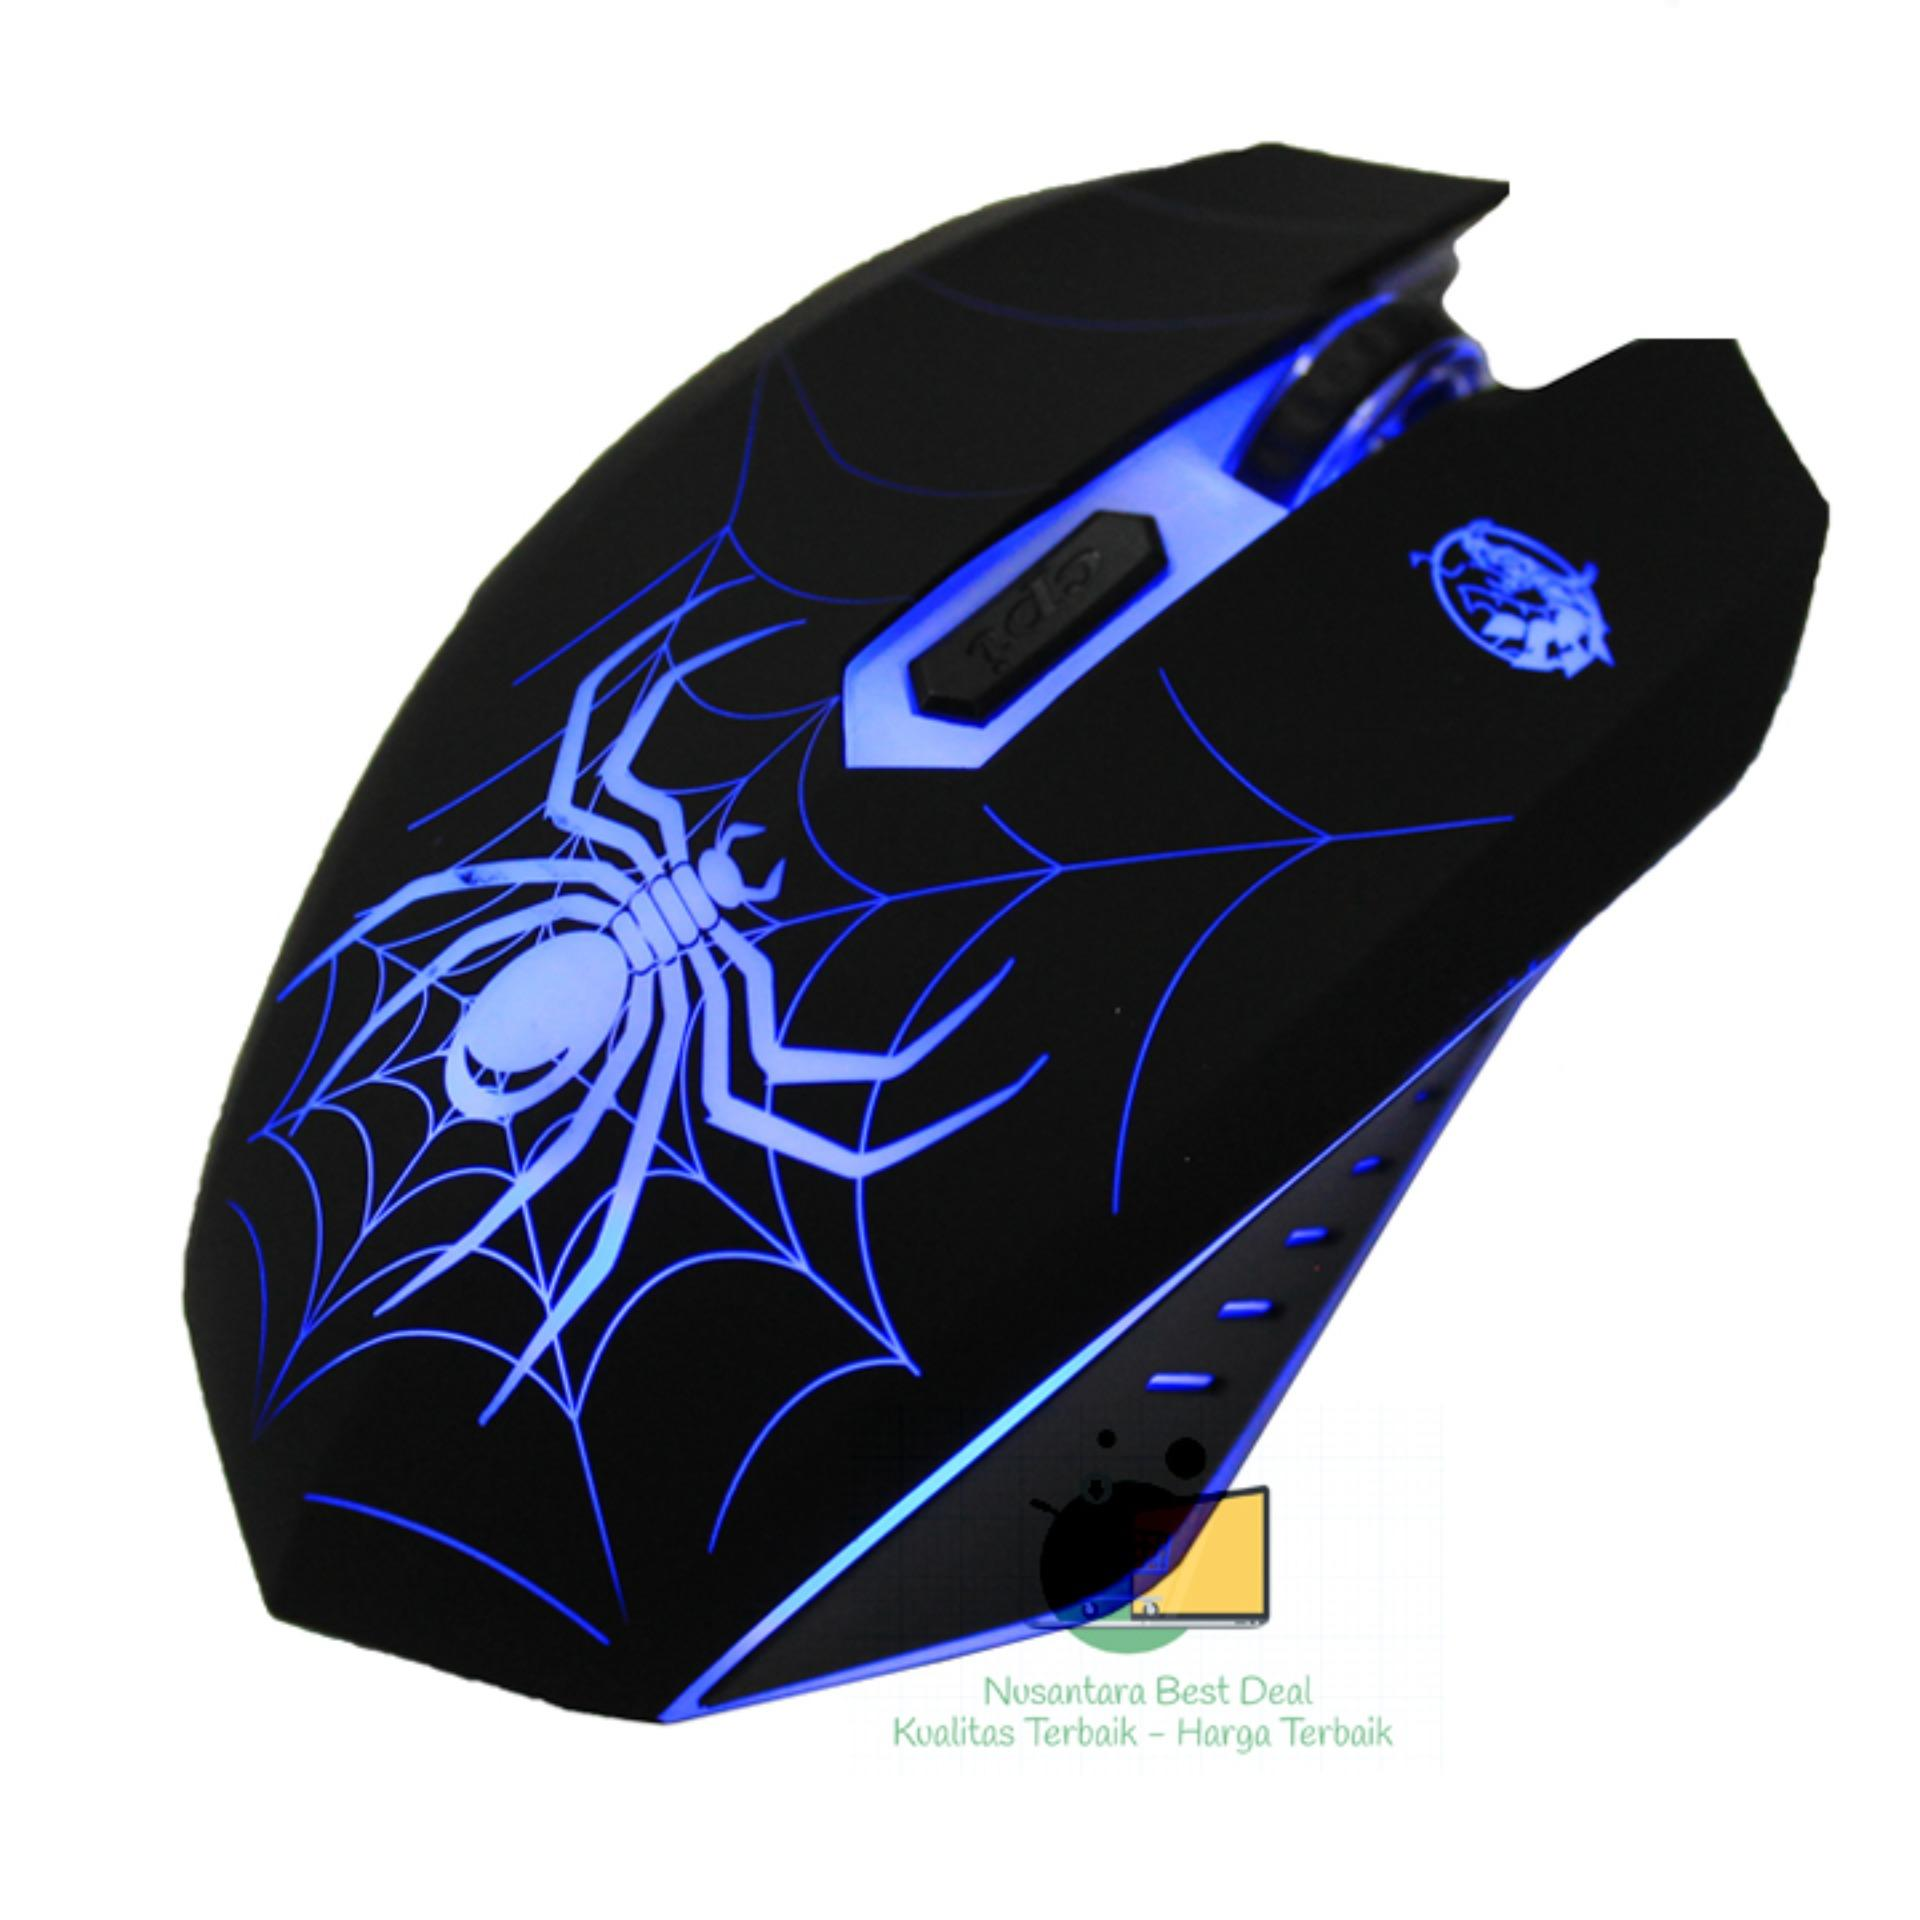 Buy Sell Cheapest Imperion Black Widow Best Quality Product Deals Mech7 87keys Mechanical Gaming Keyboard Mouse S300 Wired Original